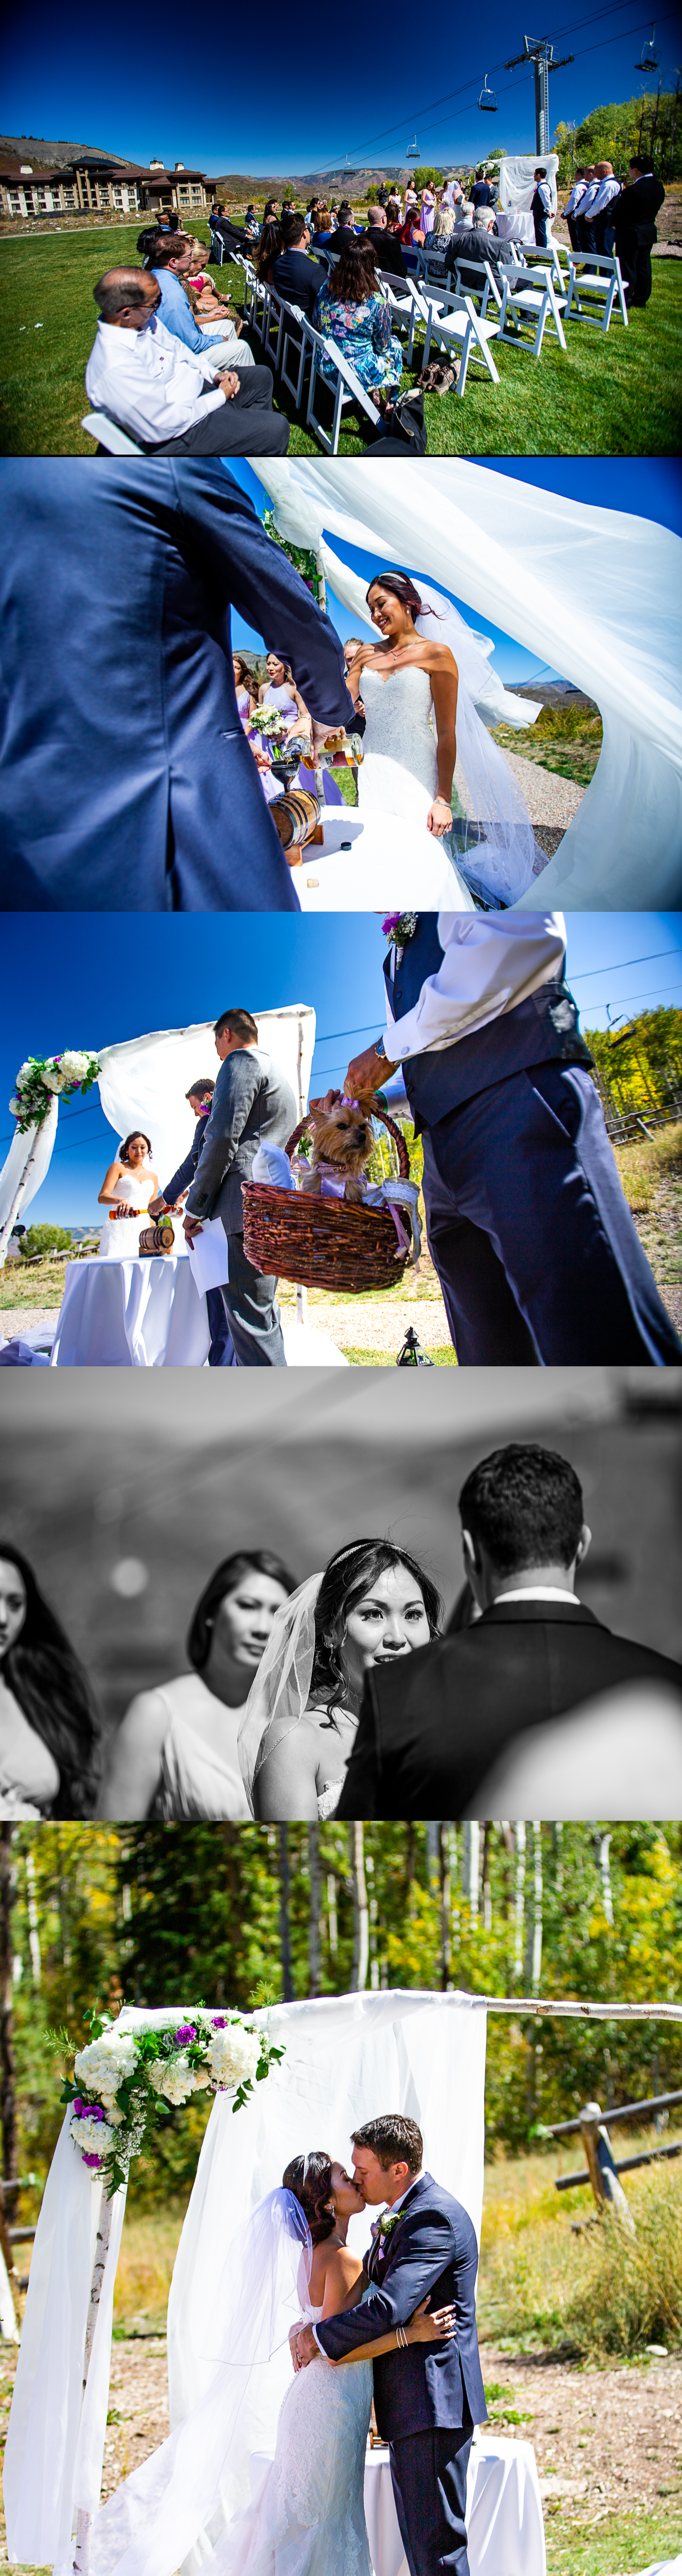 09SeptemberAspenColoradoWeddingCeremonyLocations